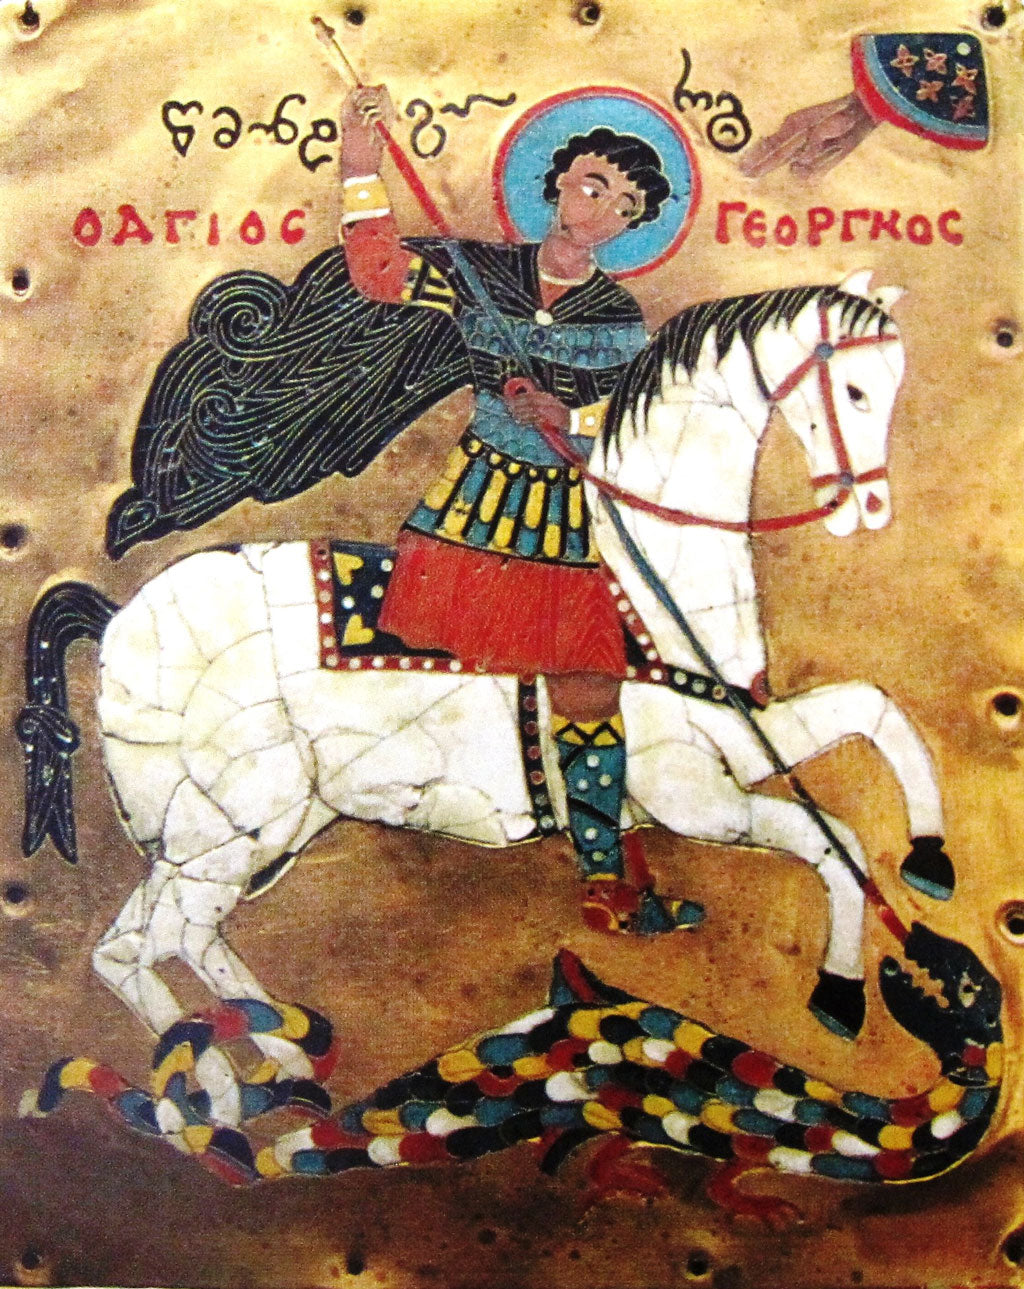 Georgian icon of Saint George